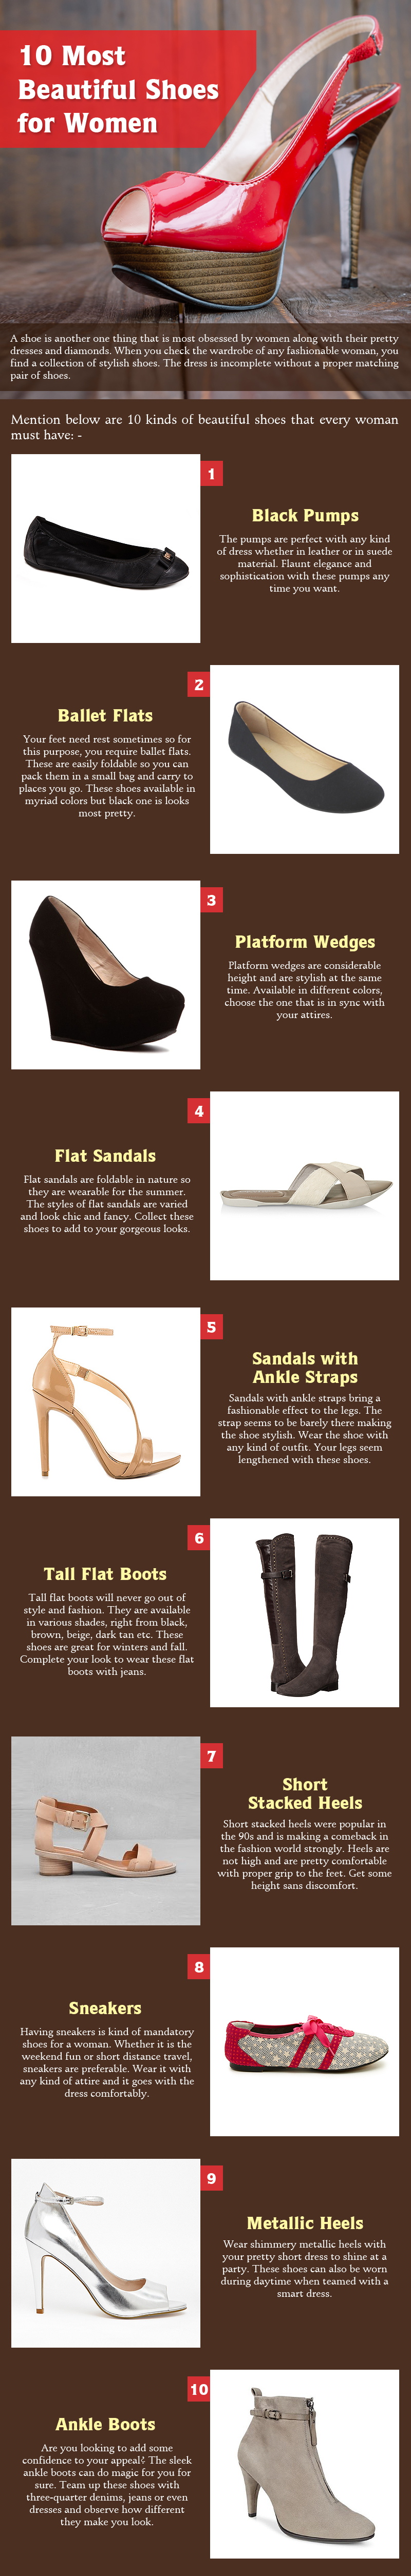 10 Most Beautiful Shoes For Women [Infographic]